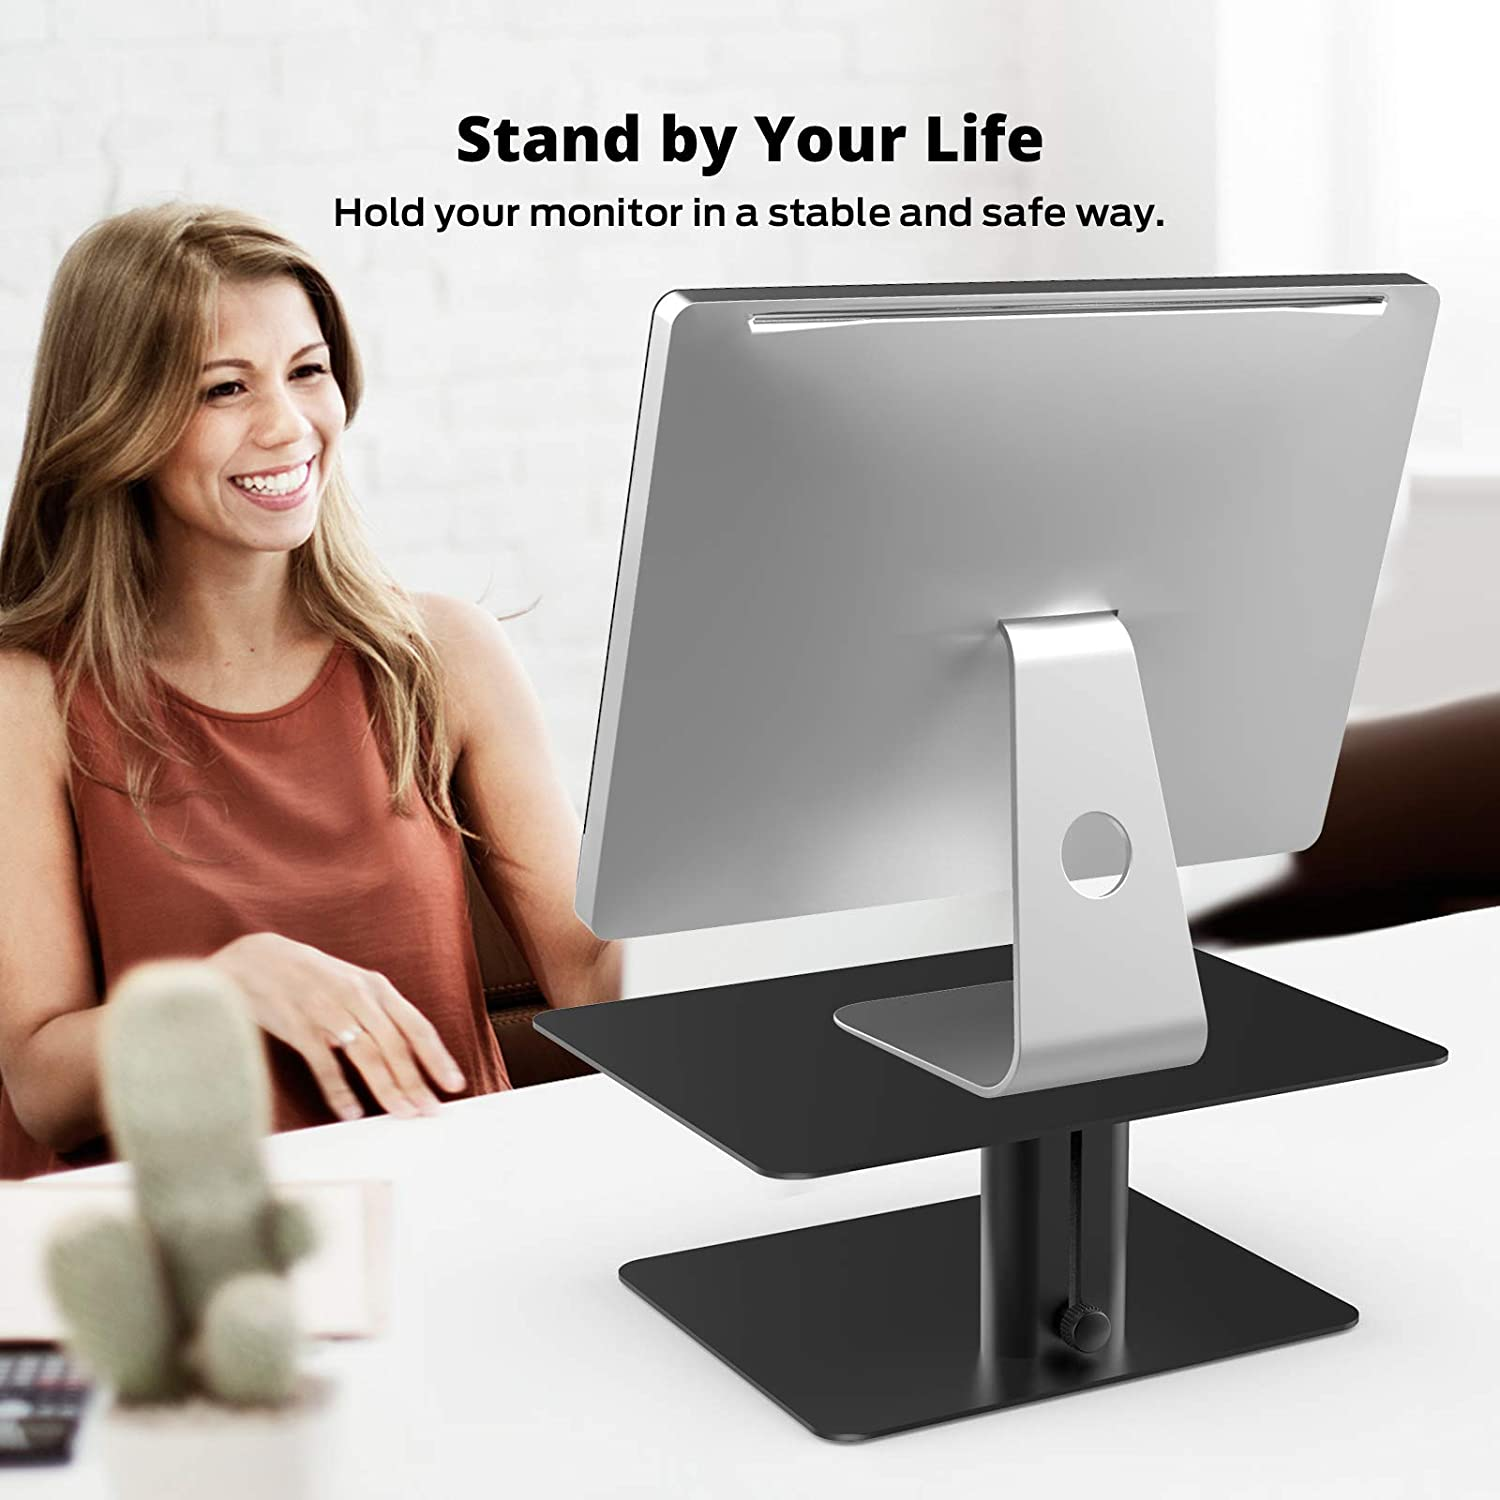 Monitor Holder Stand